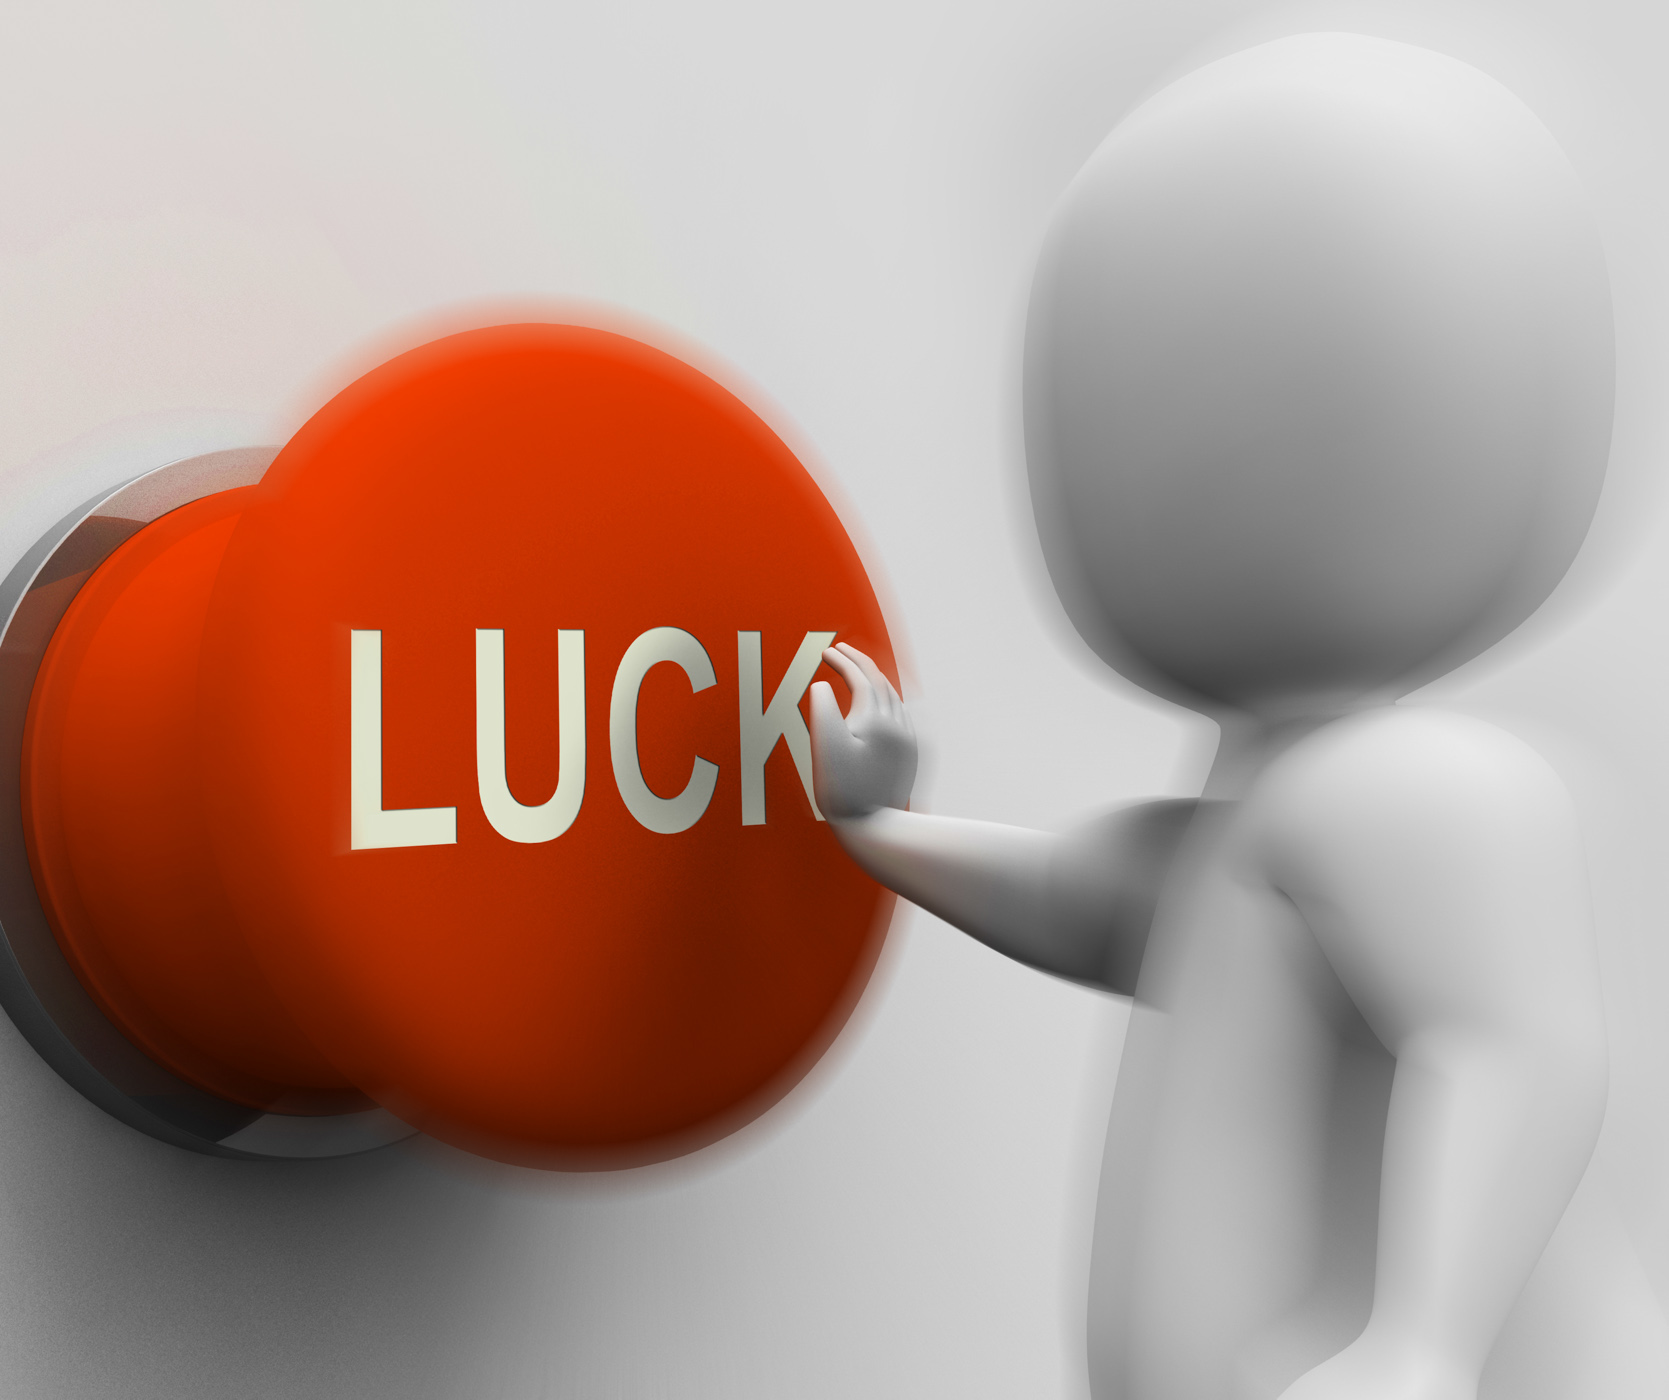 Luck pressed shows gambling fortunate and risk photo